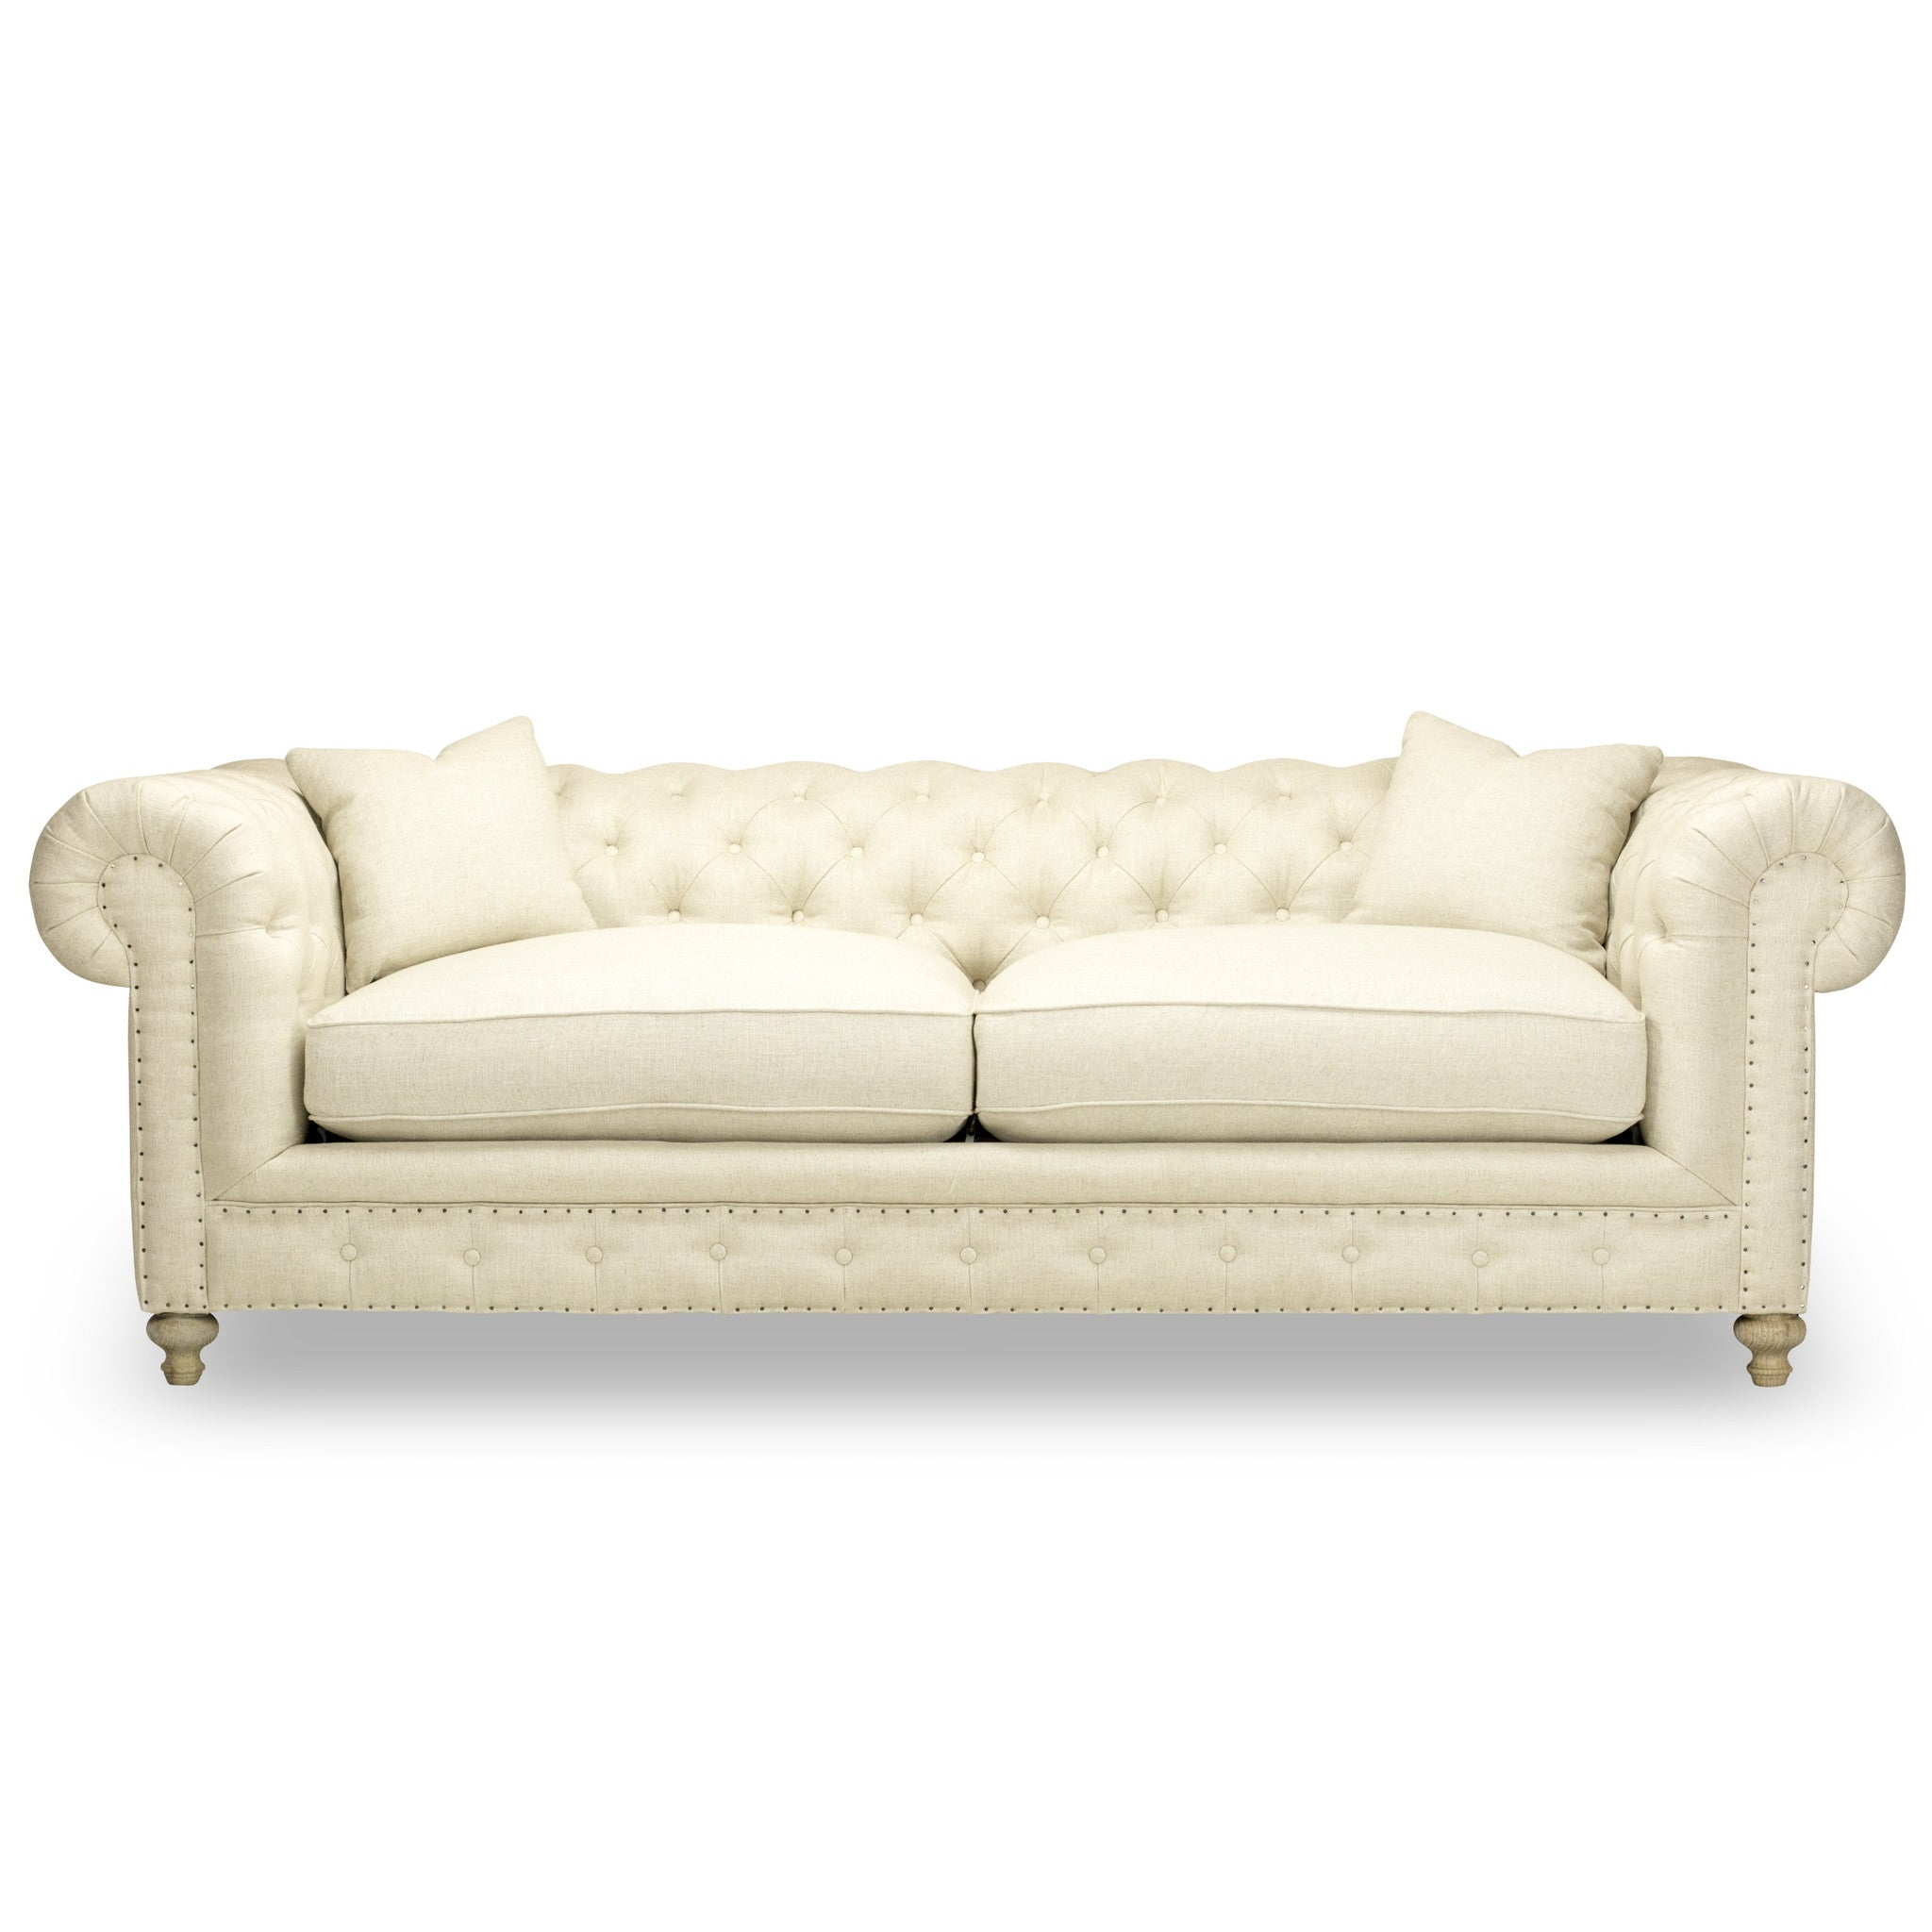 sofa couch velvet ebay itm celeste decor pearl tufted elle